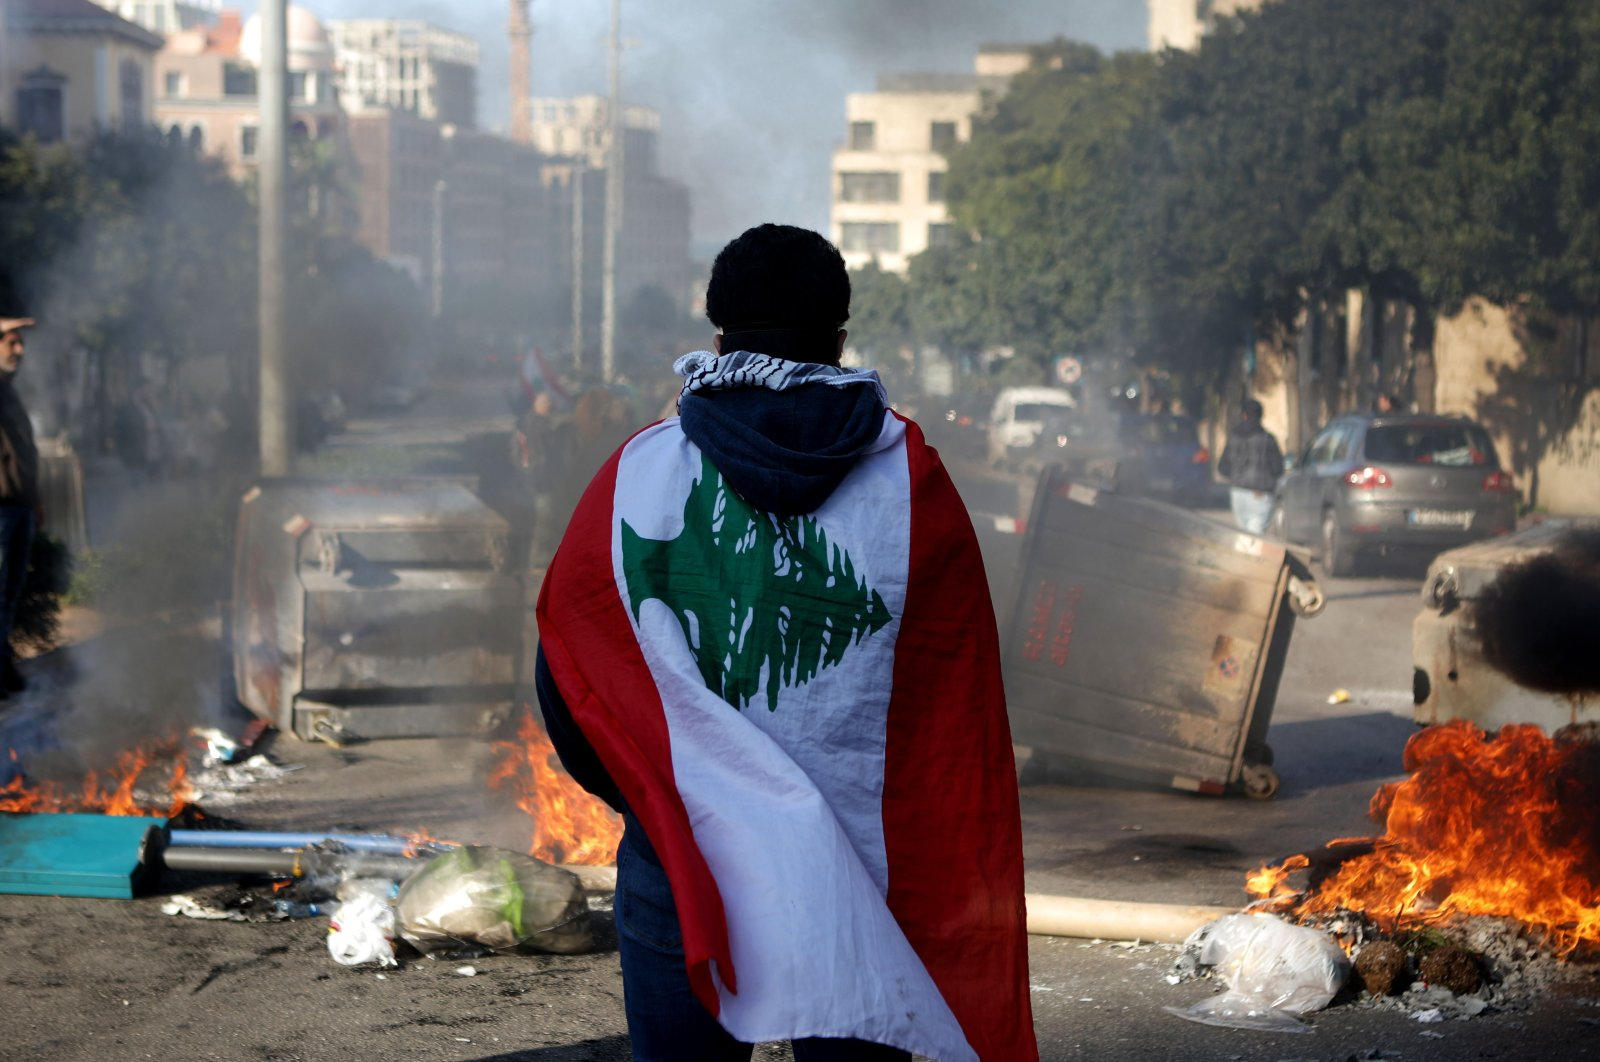 A Lebanese anti-government protester, wrapped in a national flag, stands in front of a road blocked with burning tires and overturned garbage dumpster, Beirut, Jan. 14, 2020. (AFP Photo)